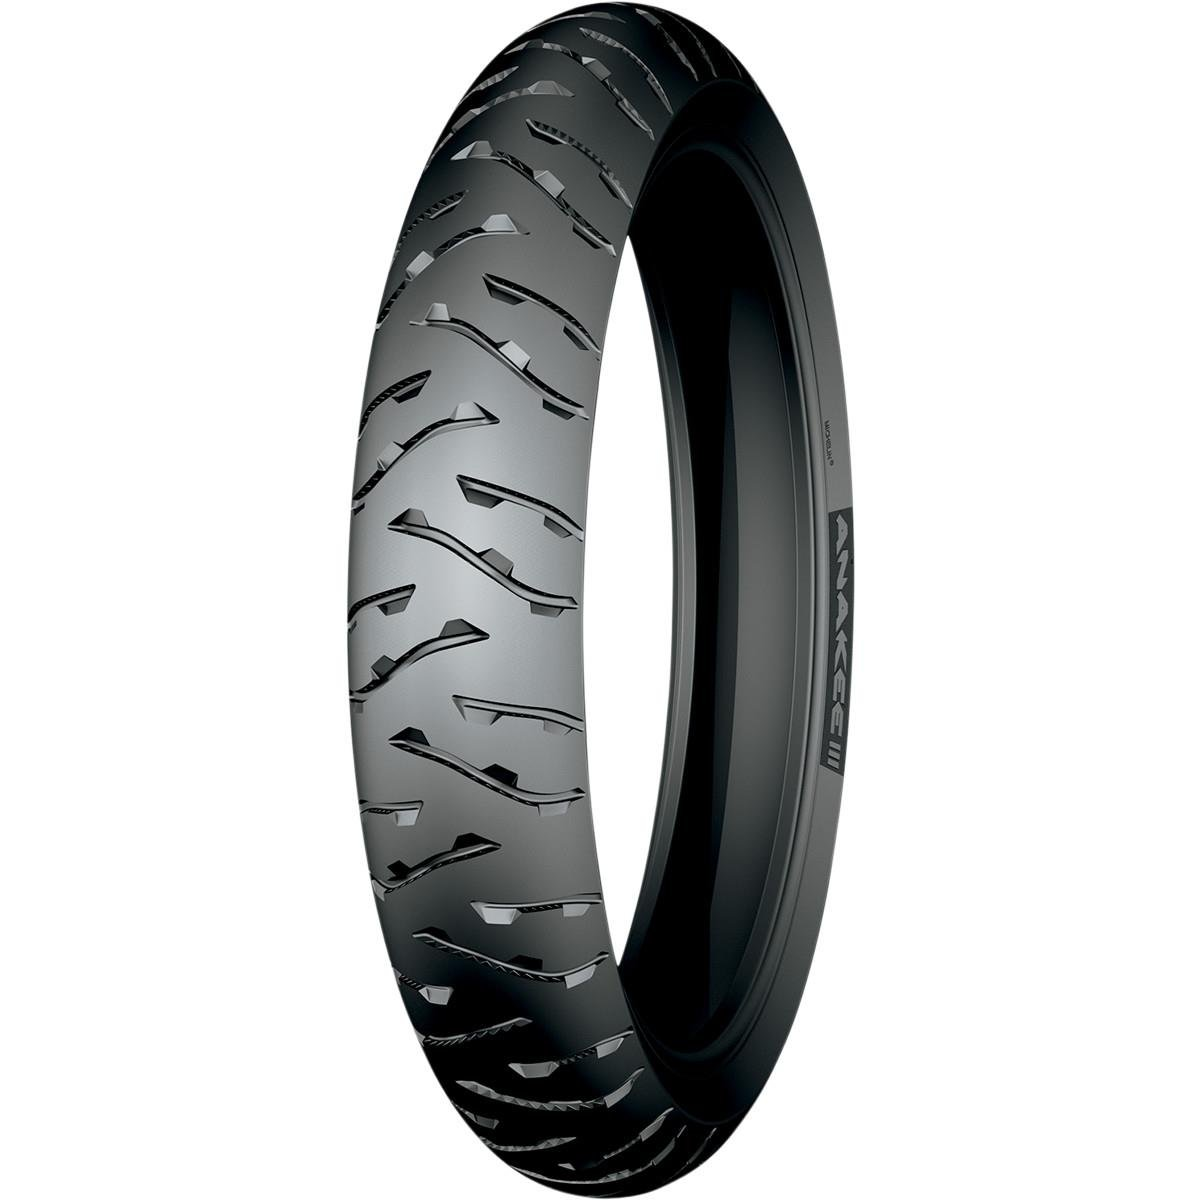 Michelin Anakee III Dual/Enduro Front Motorcycle Radial Tire - 110/80R19 59V 4333045803